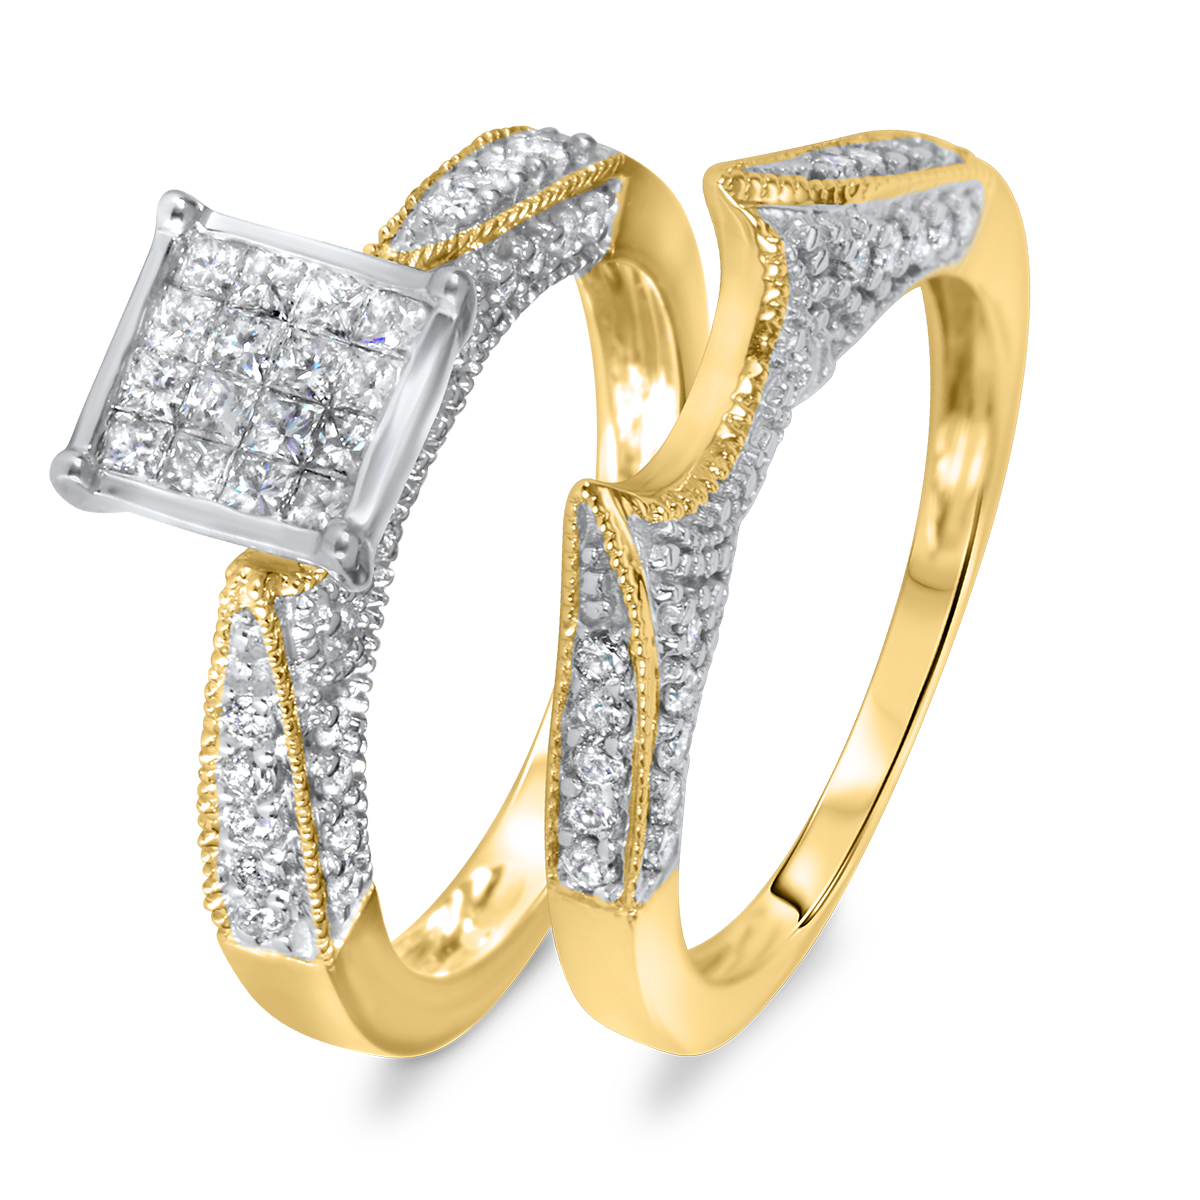 1 ct t w diamond women 39 s bridal wedding ring set 14k yellow gold my trio rings br103y14k c004. Black Bedroom Furniture Sets. Home Design Ideas